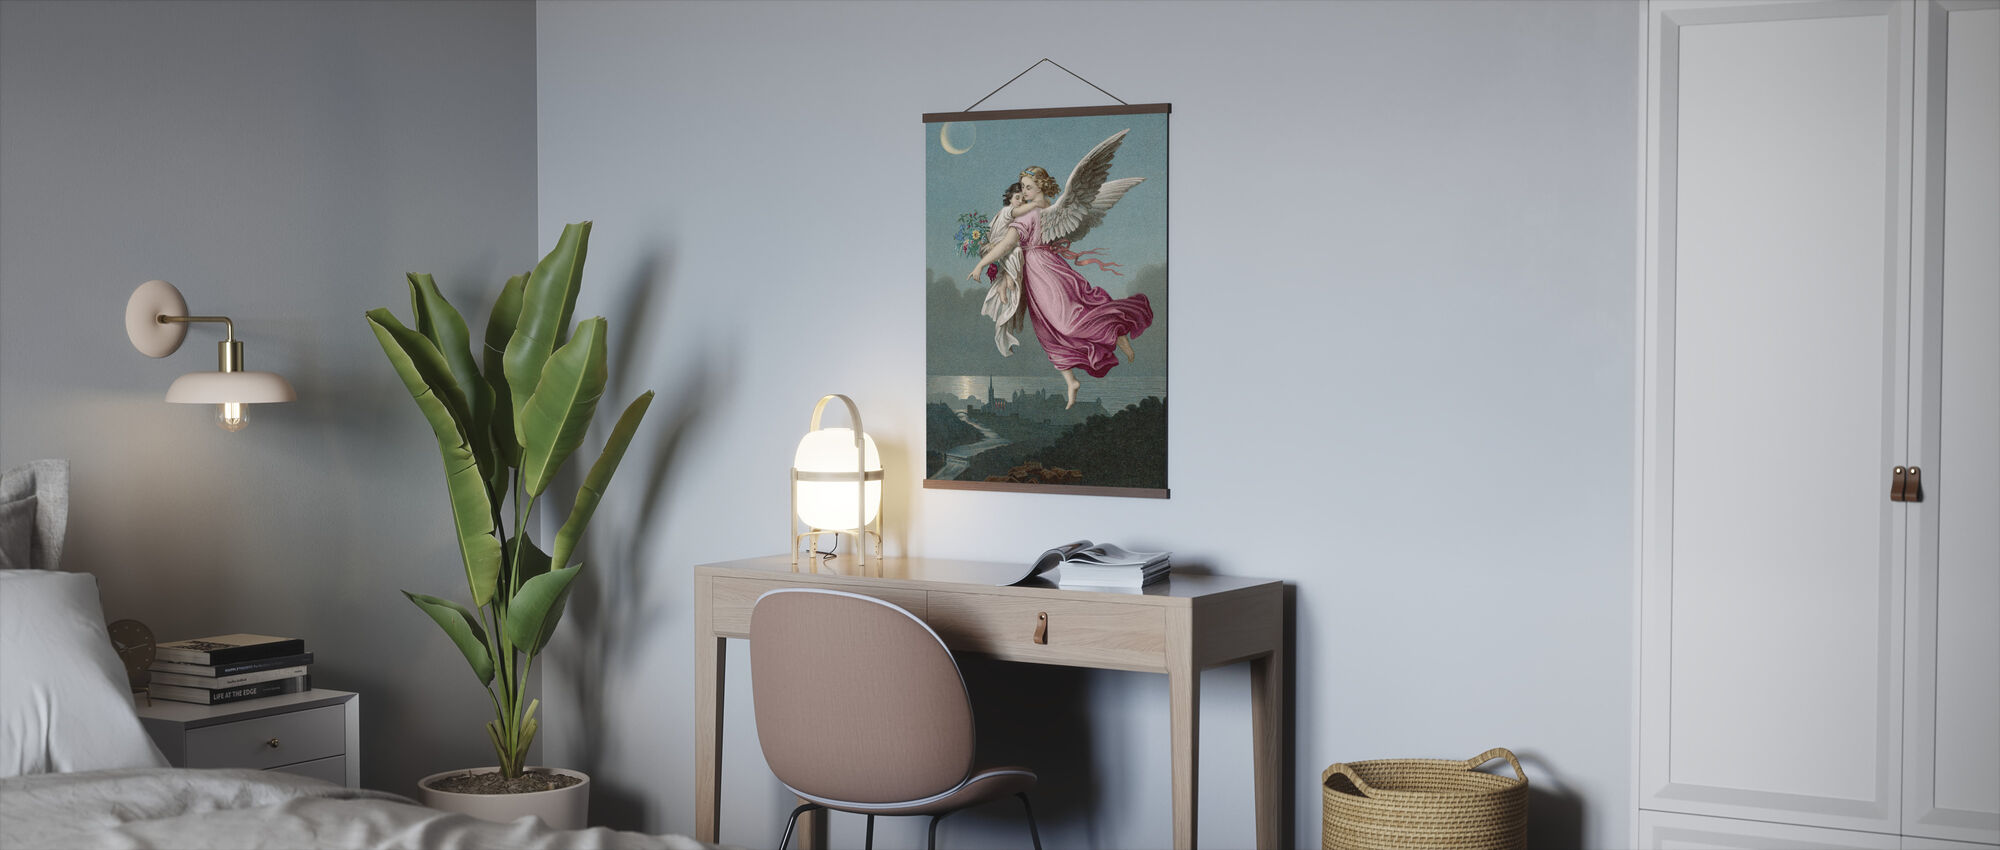 Carrying - Poster - Office